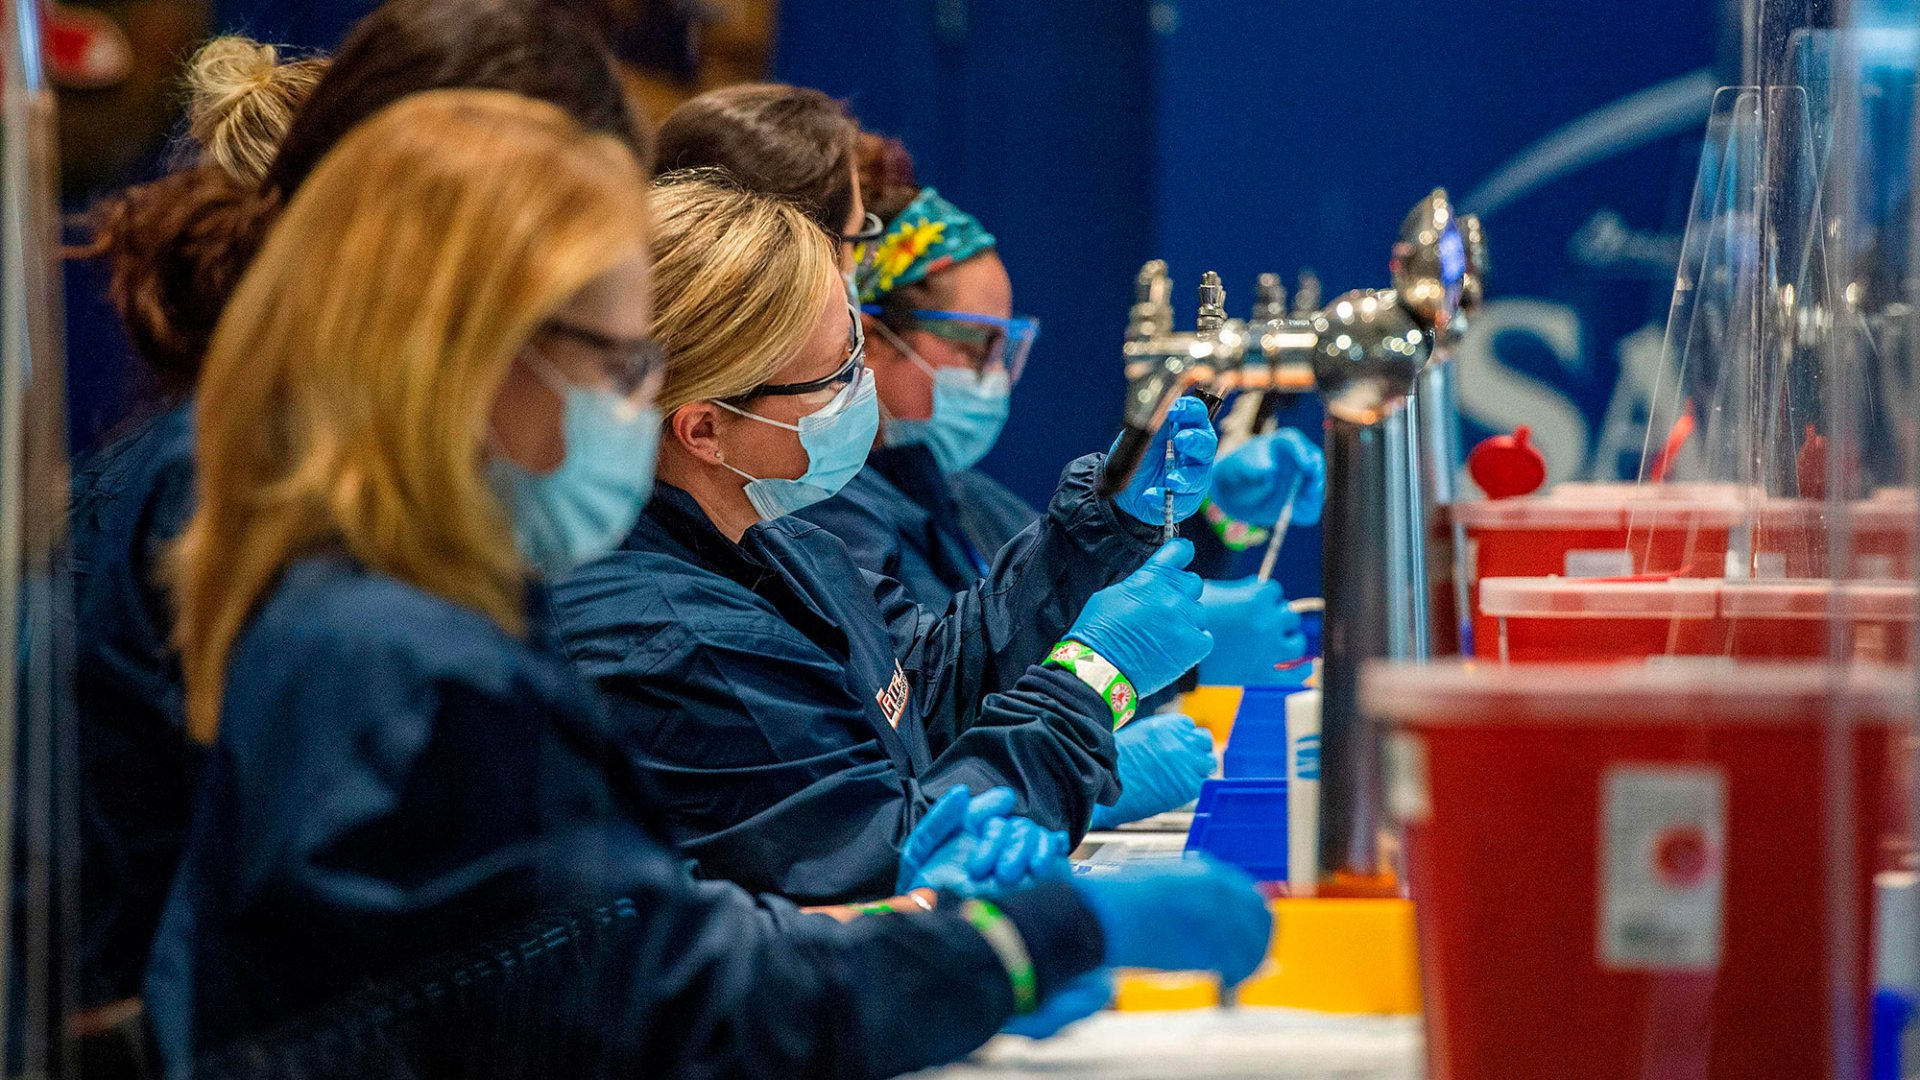 Medical staff workers prepare syringes with doses of the Covid-19 vaccine at Fenway Park in Boston in January.